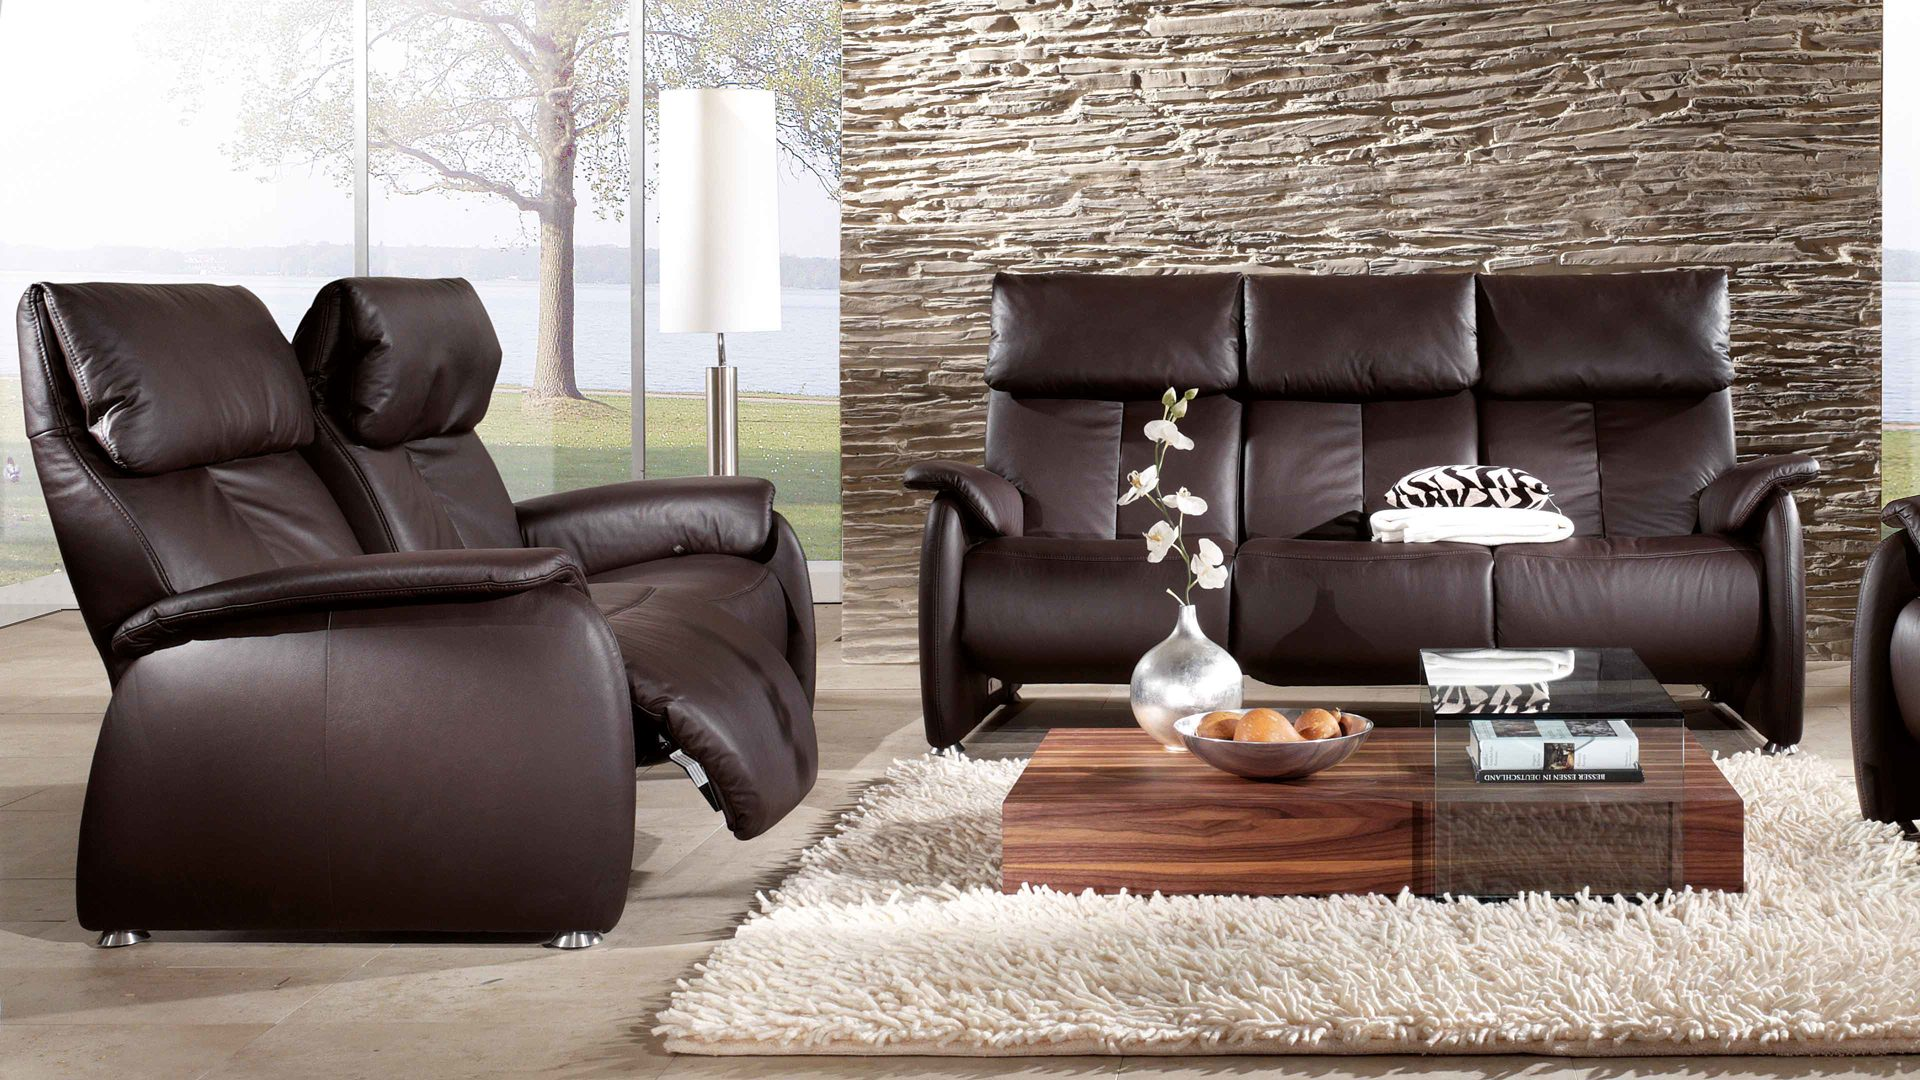 Himolla Relax Sofa 2 5 Sitzer Longlife By Himolla Affordable Das Bild Wird Geladen With